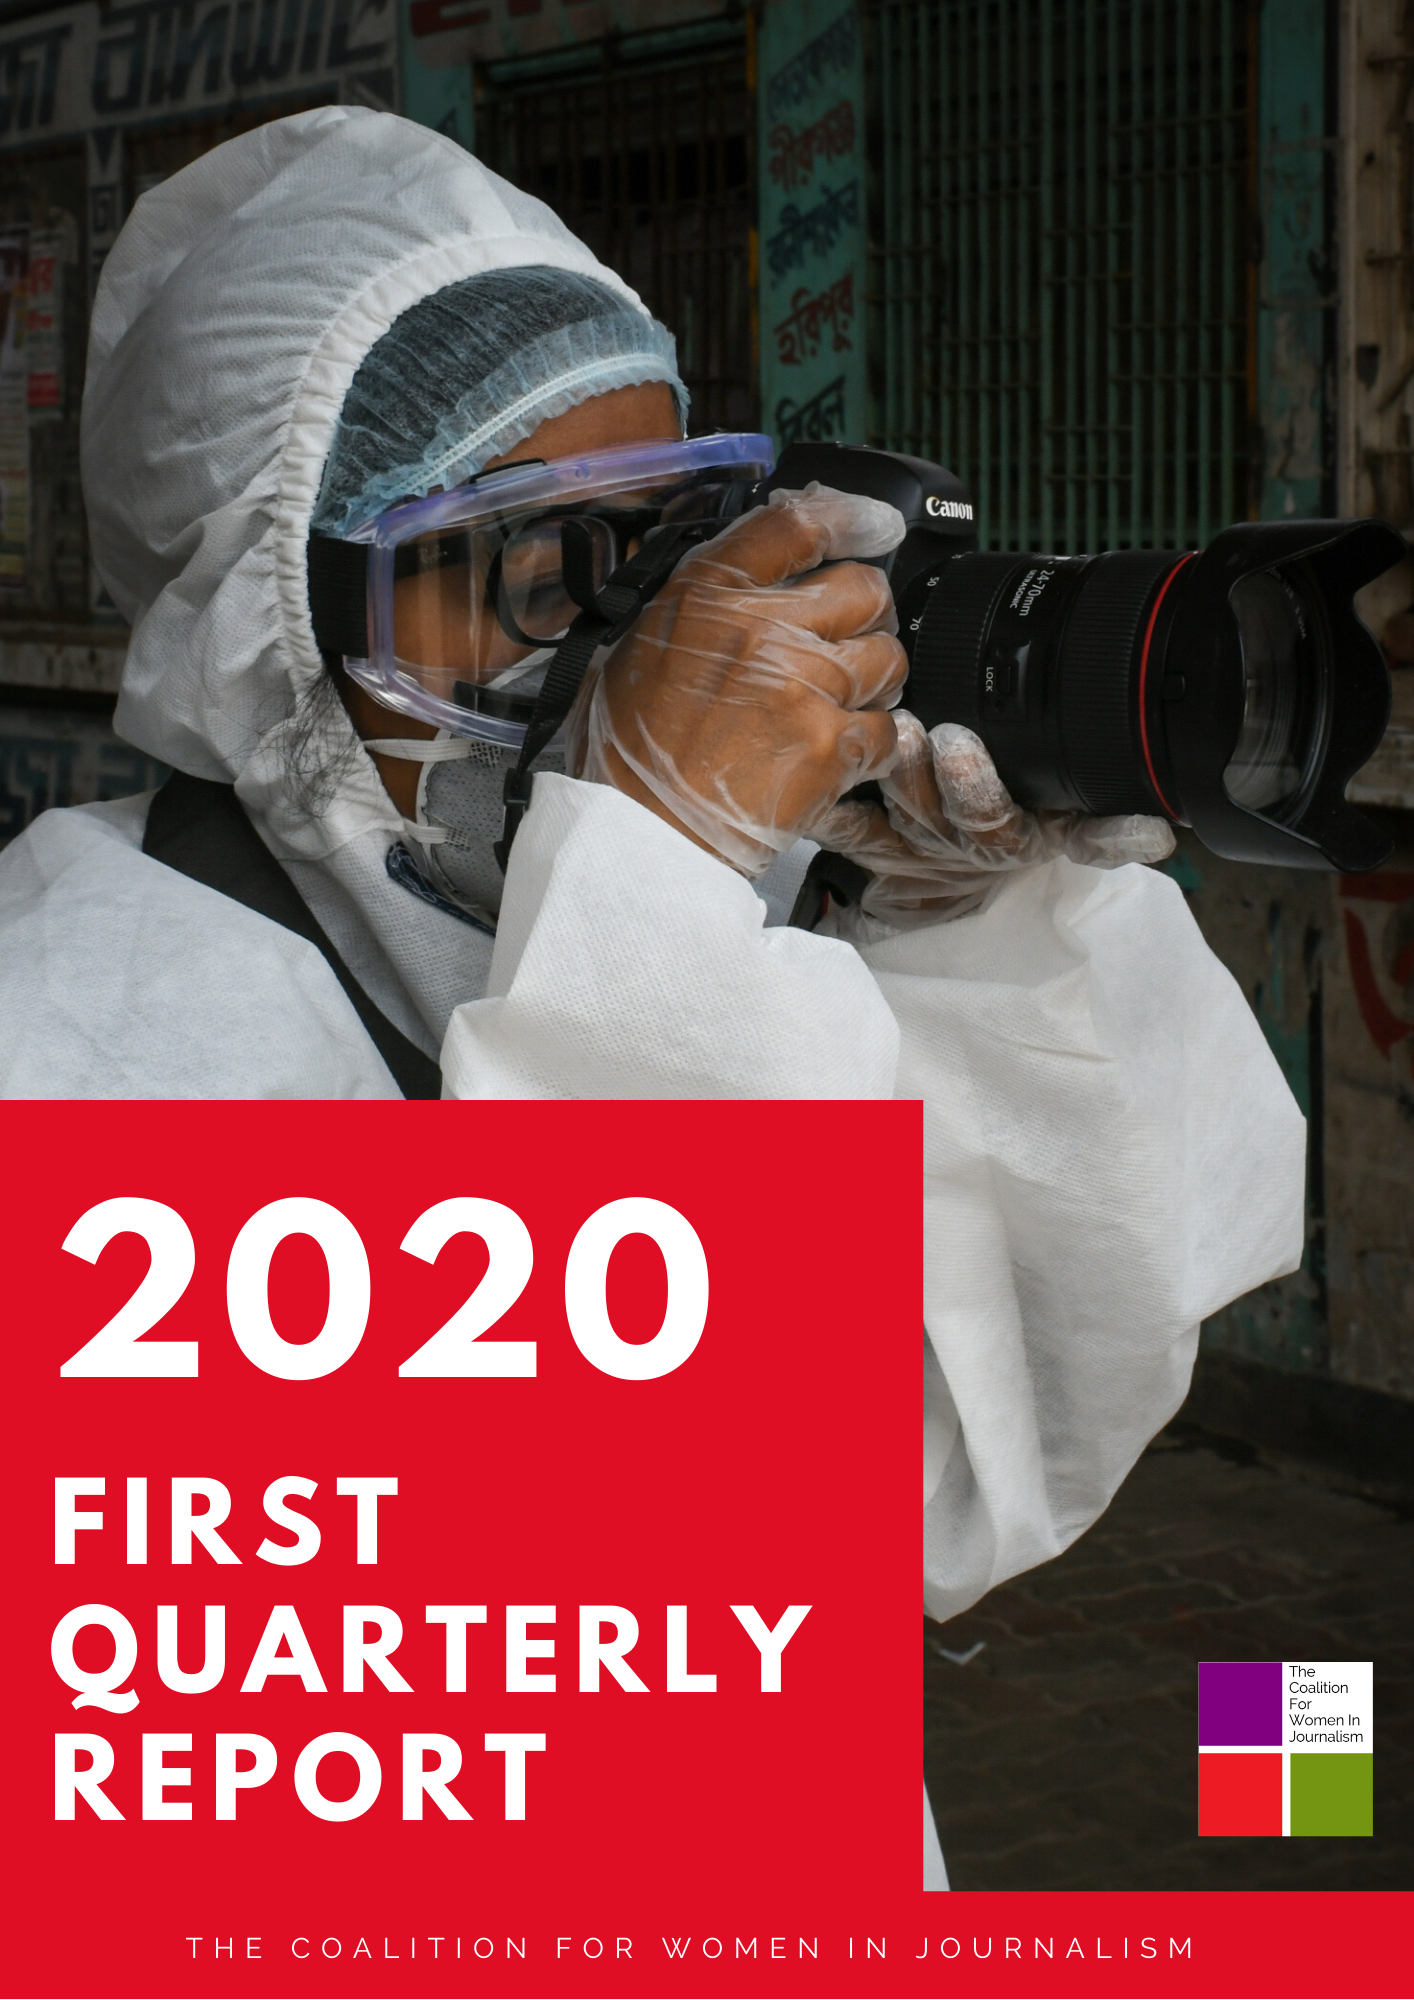 2020 first quarterly report the coalition for women in journalism